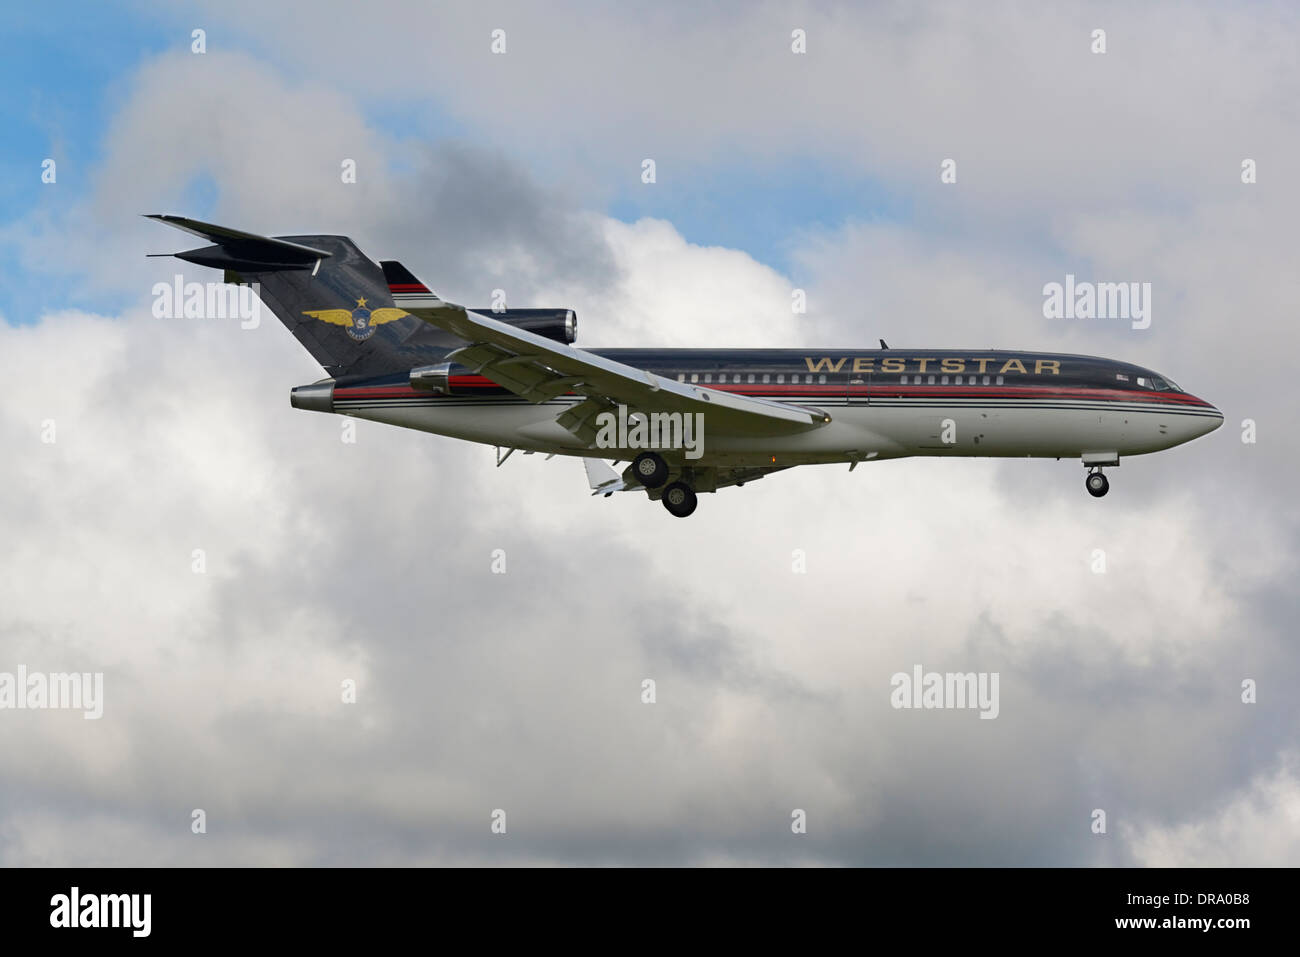 Stock Photo  West Star Boeing 727200 On Final Approach To Runway